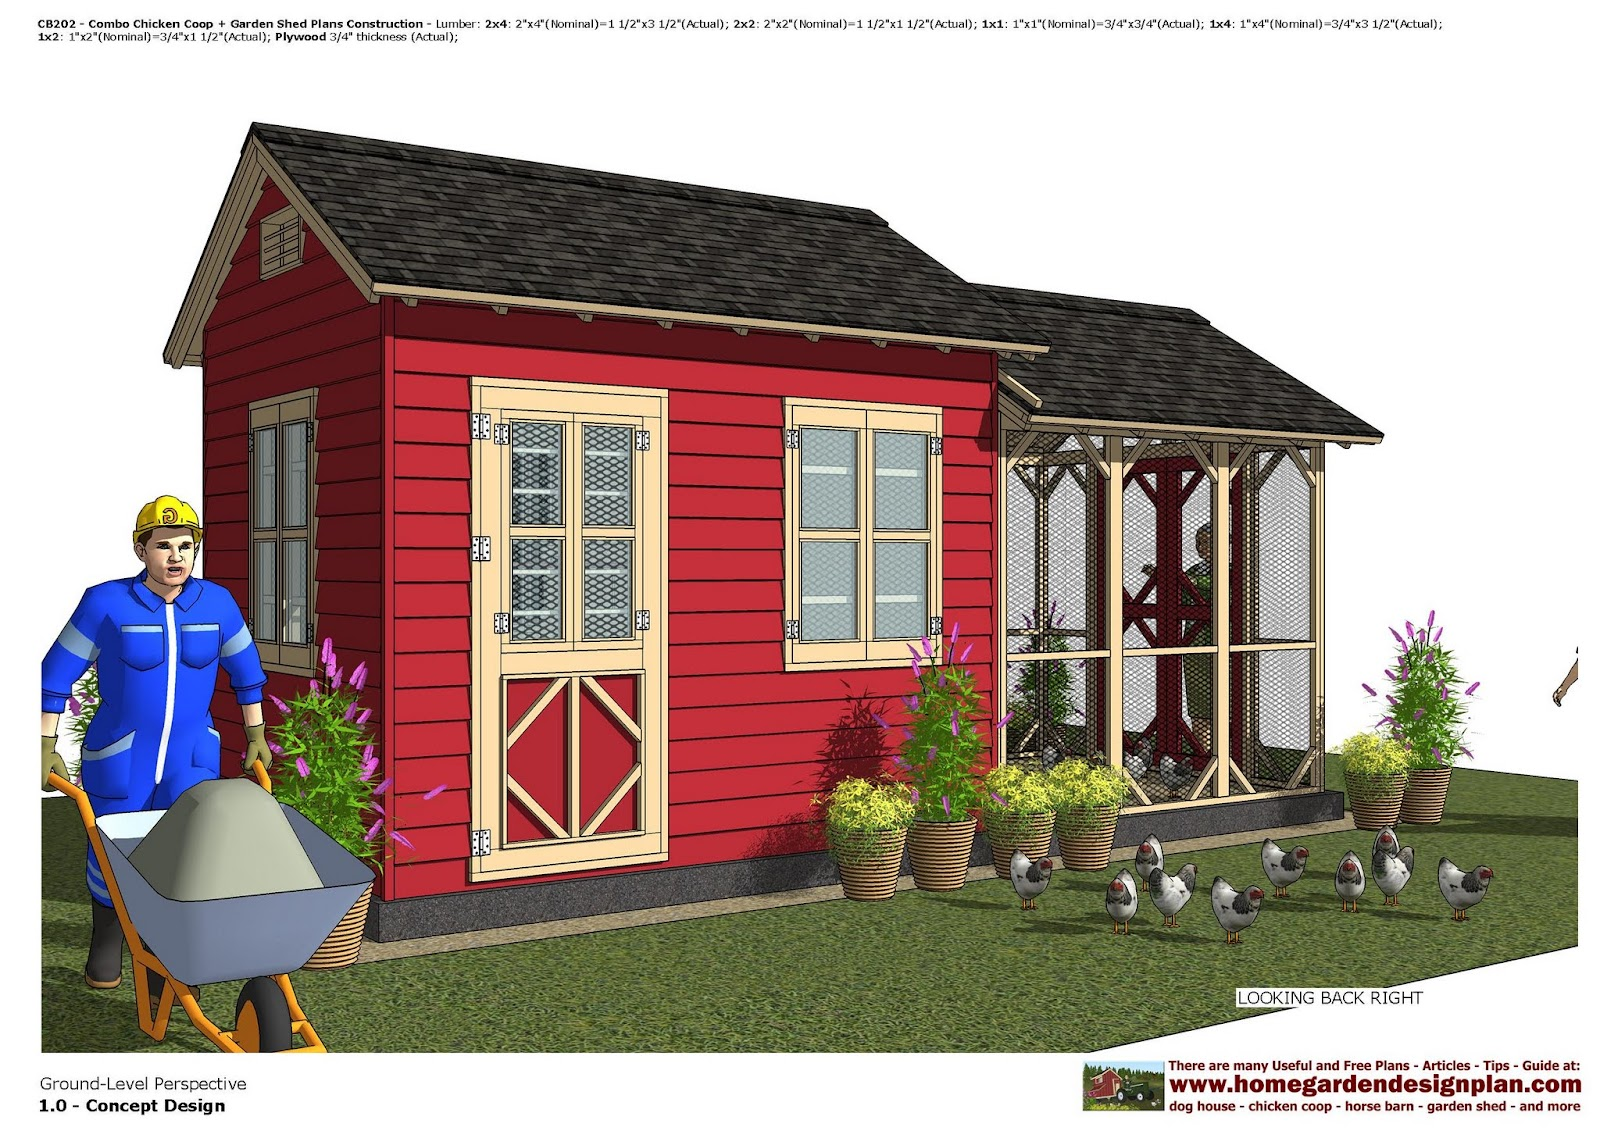 Home garden plans cb202 combo chicken coop garden for Free shed design software with materials list